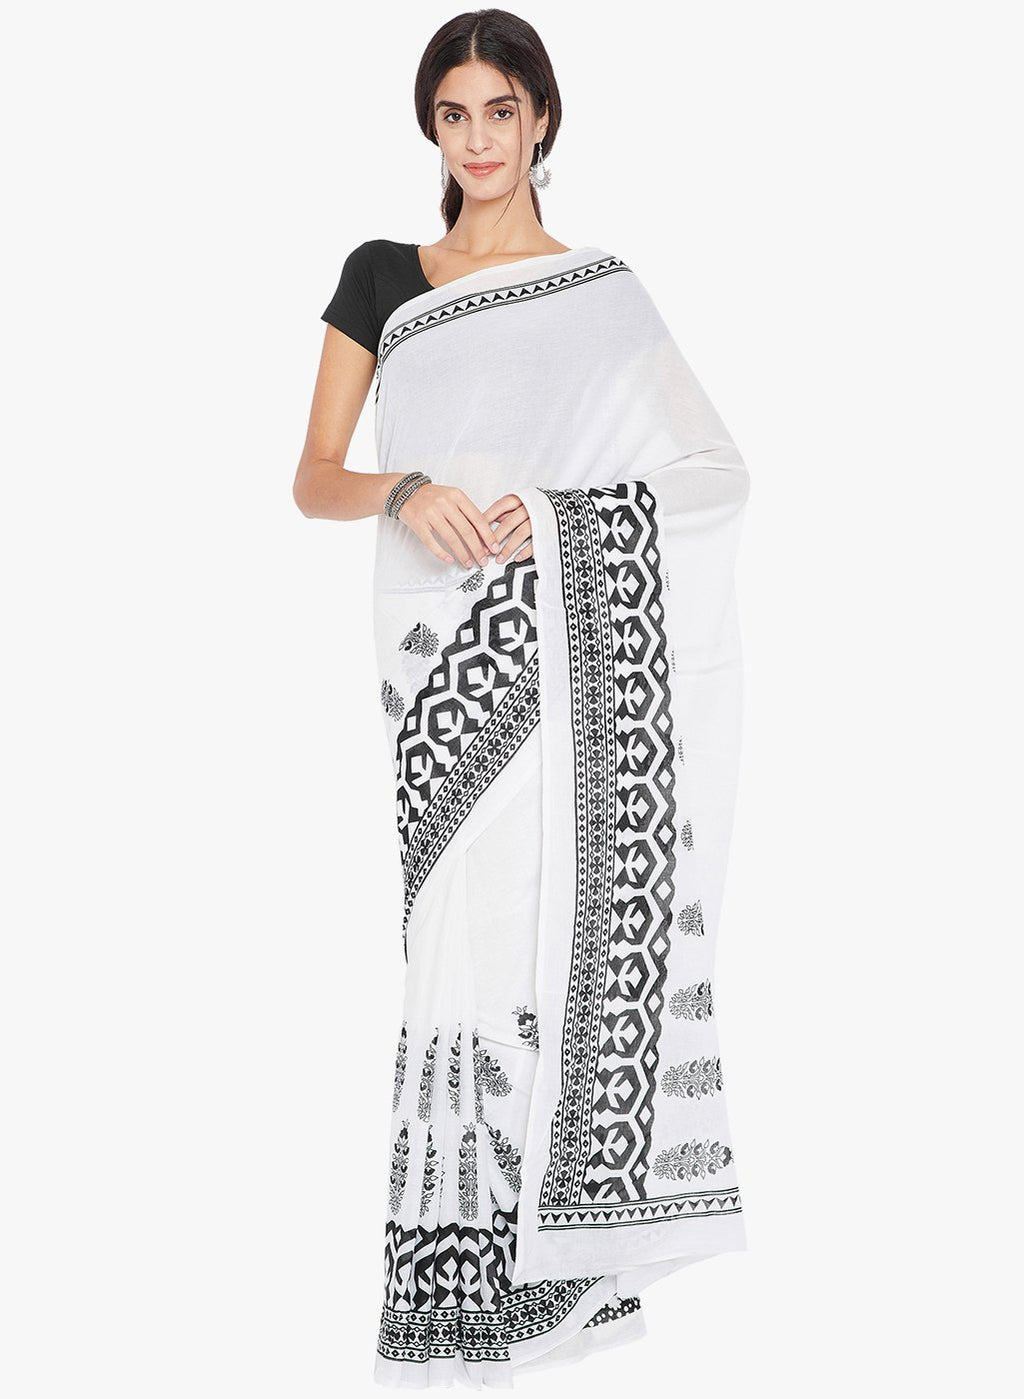 Black & White Hand Block Print Handcrafted Cotton Saree-Saree-Kalakari India-RDSNSA0136-Chanderi, Geographical Indication, Hand Blocks, Hand Crafted, Heritage Prints, Sarees, Silk, Sustainable Fabrics-[Linen,Ethnic,wear,Fashionista,Handloom,Handicraft,Indigo,blockprint,block,print,Cotton,Chanderi,Blue, latest,classy,party,bollywood,trendy,summer,style,traditional,formal,elegant,unique,style,hand,block,print, dabu,booti,gift,present,glamorous,affordable,collectible,Sari,Saree,printed, holi, Diwal